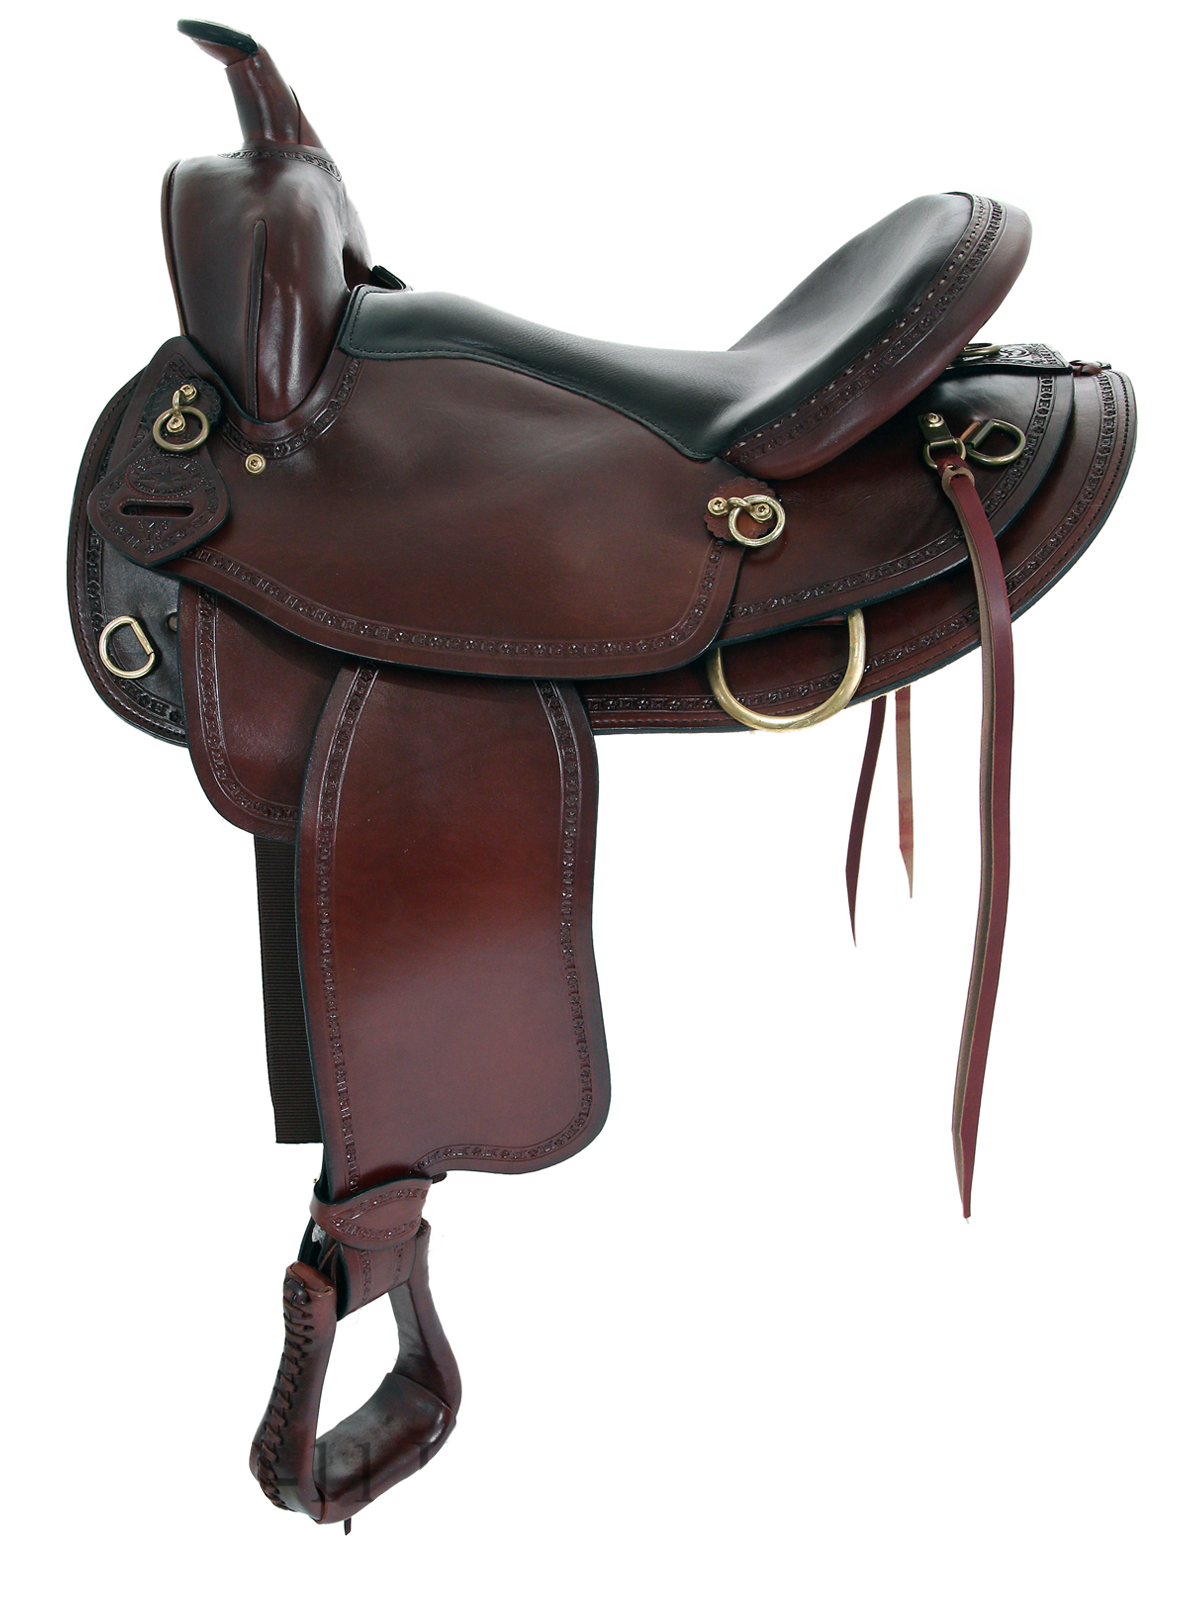 16inch 17inch Big Horn Texas Best Hill Country Trail II Saddle 940F